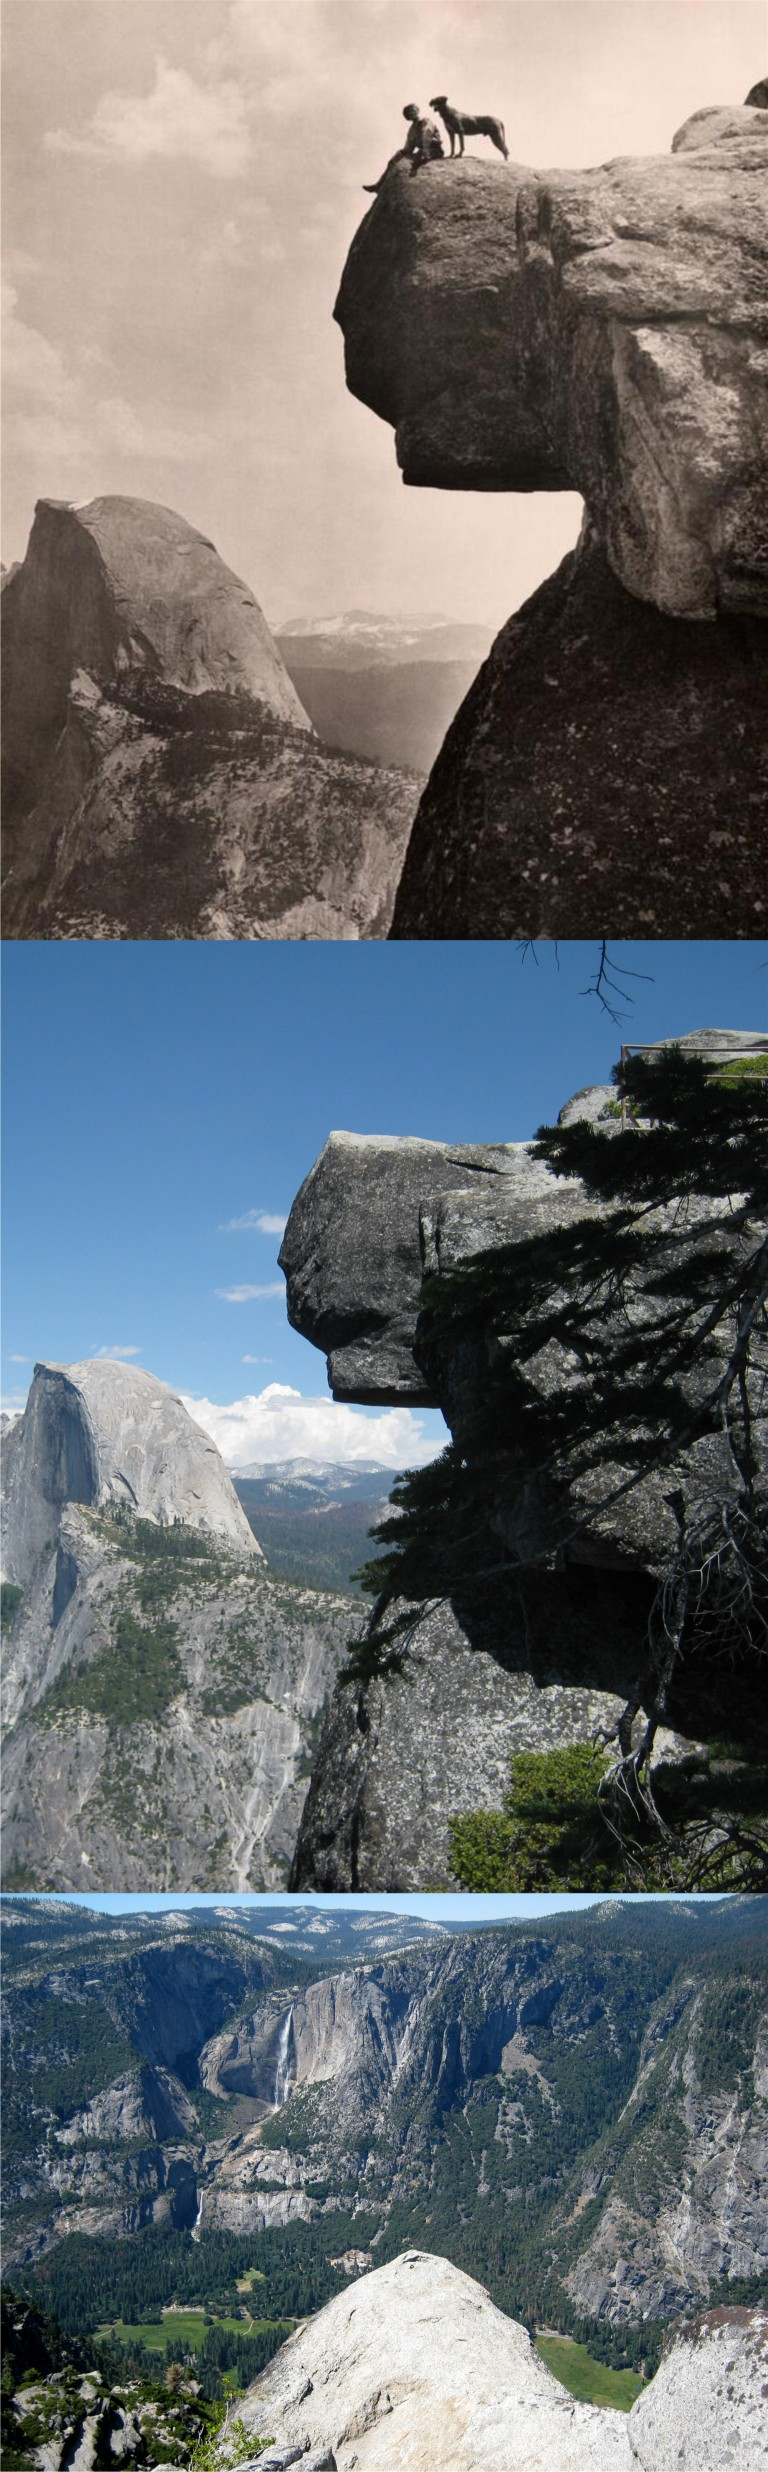 yosemiteviewredo